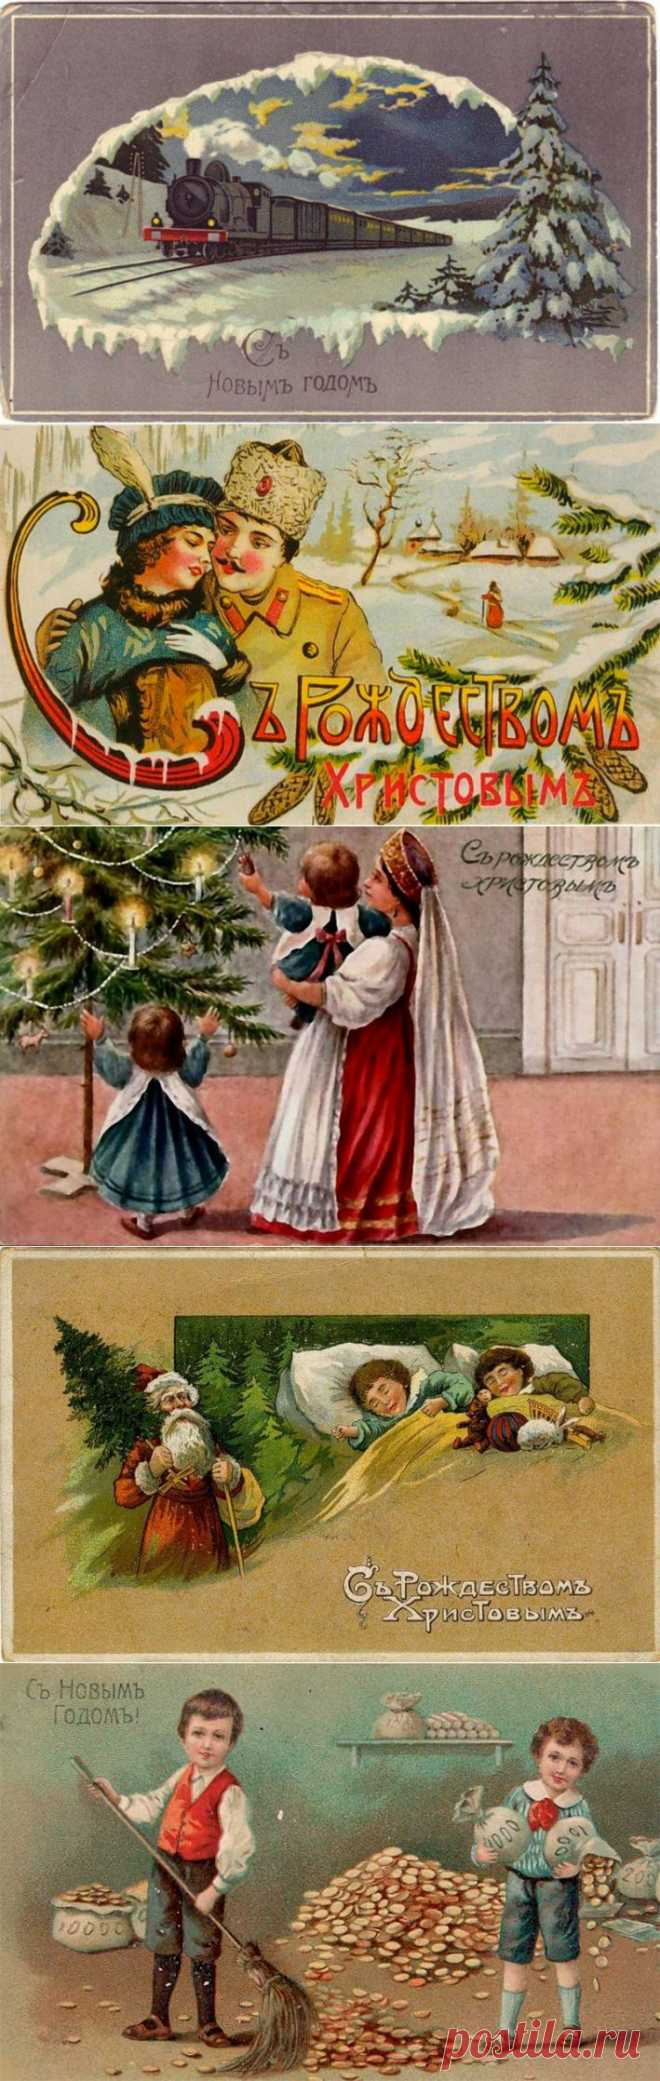 Pre-revolutionary New Year's cards.